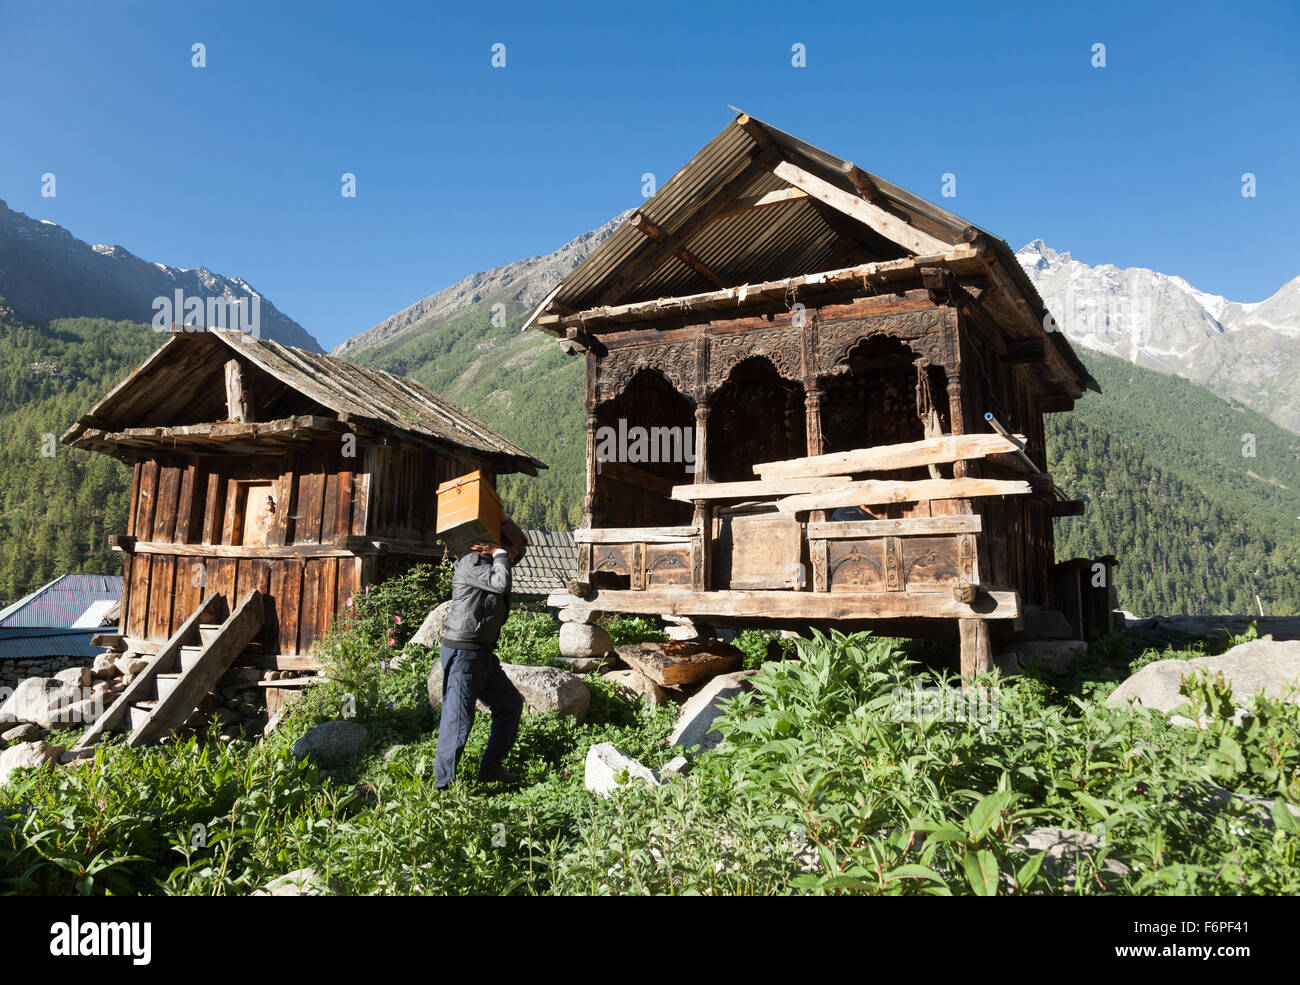 The village of Chitkul at the last inhabited village on the Indo-China border Himachal Pradesh, Northern India - Stock Image